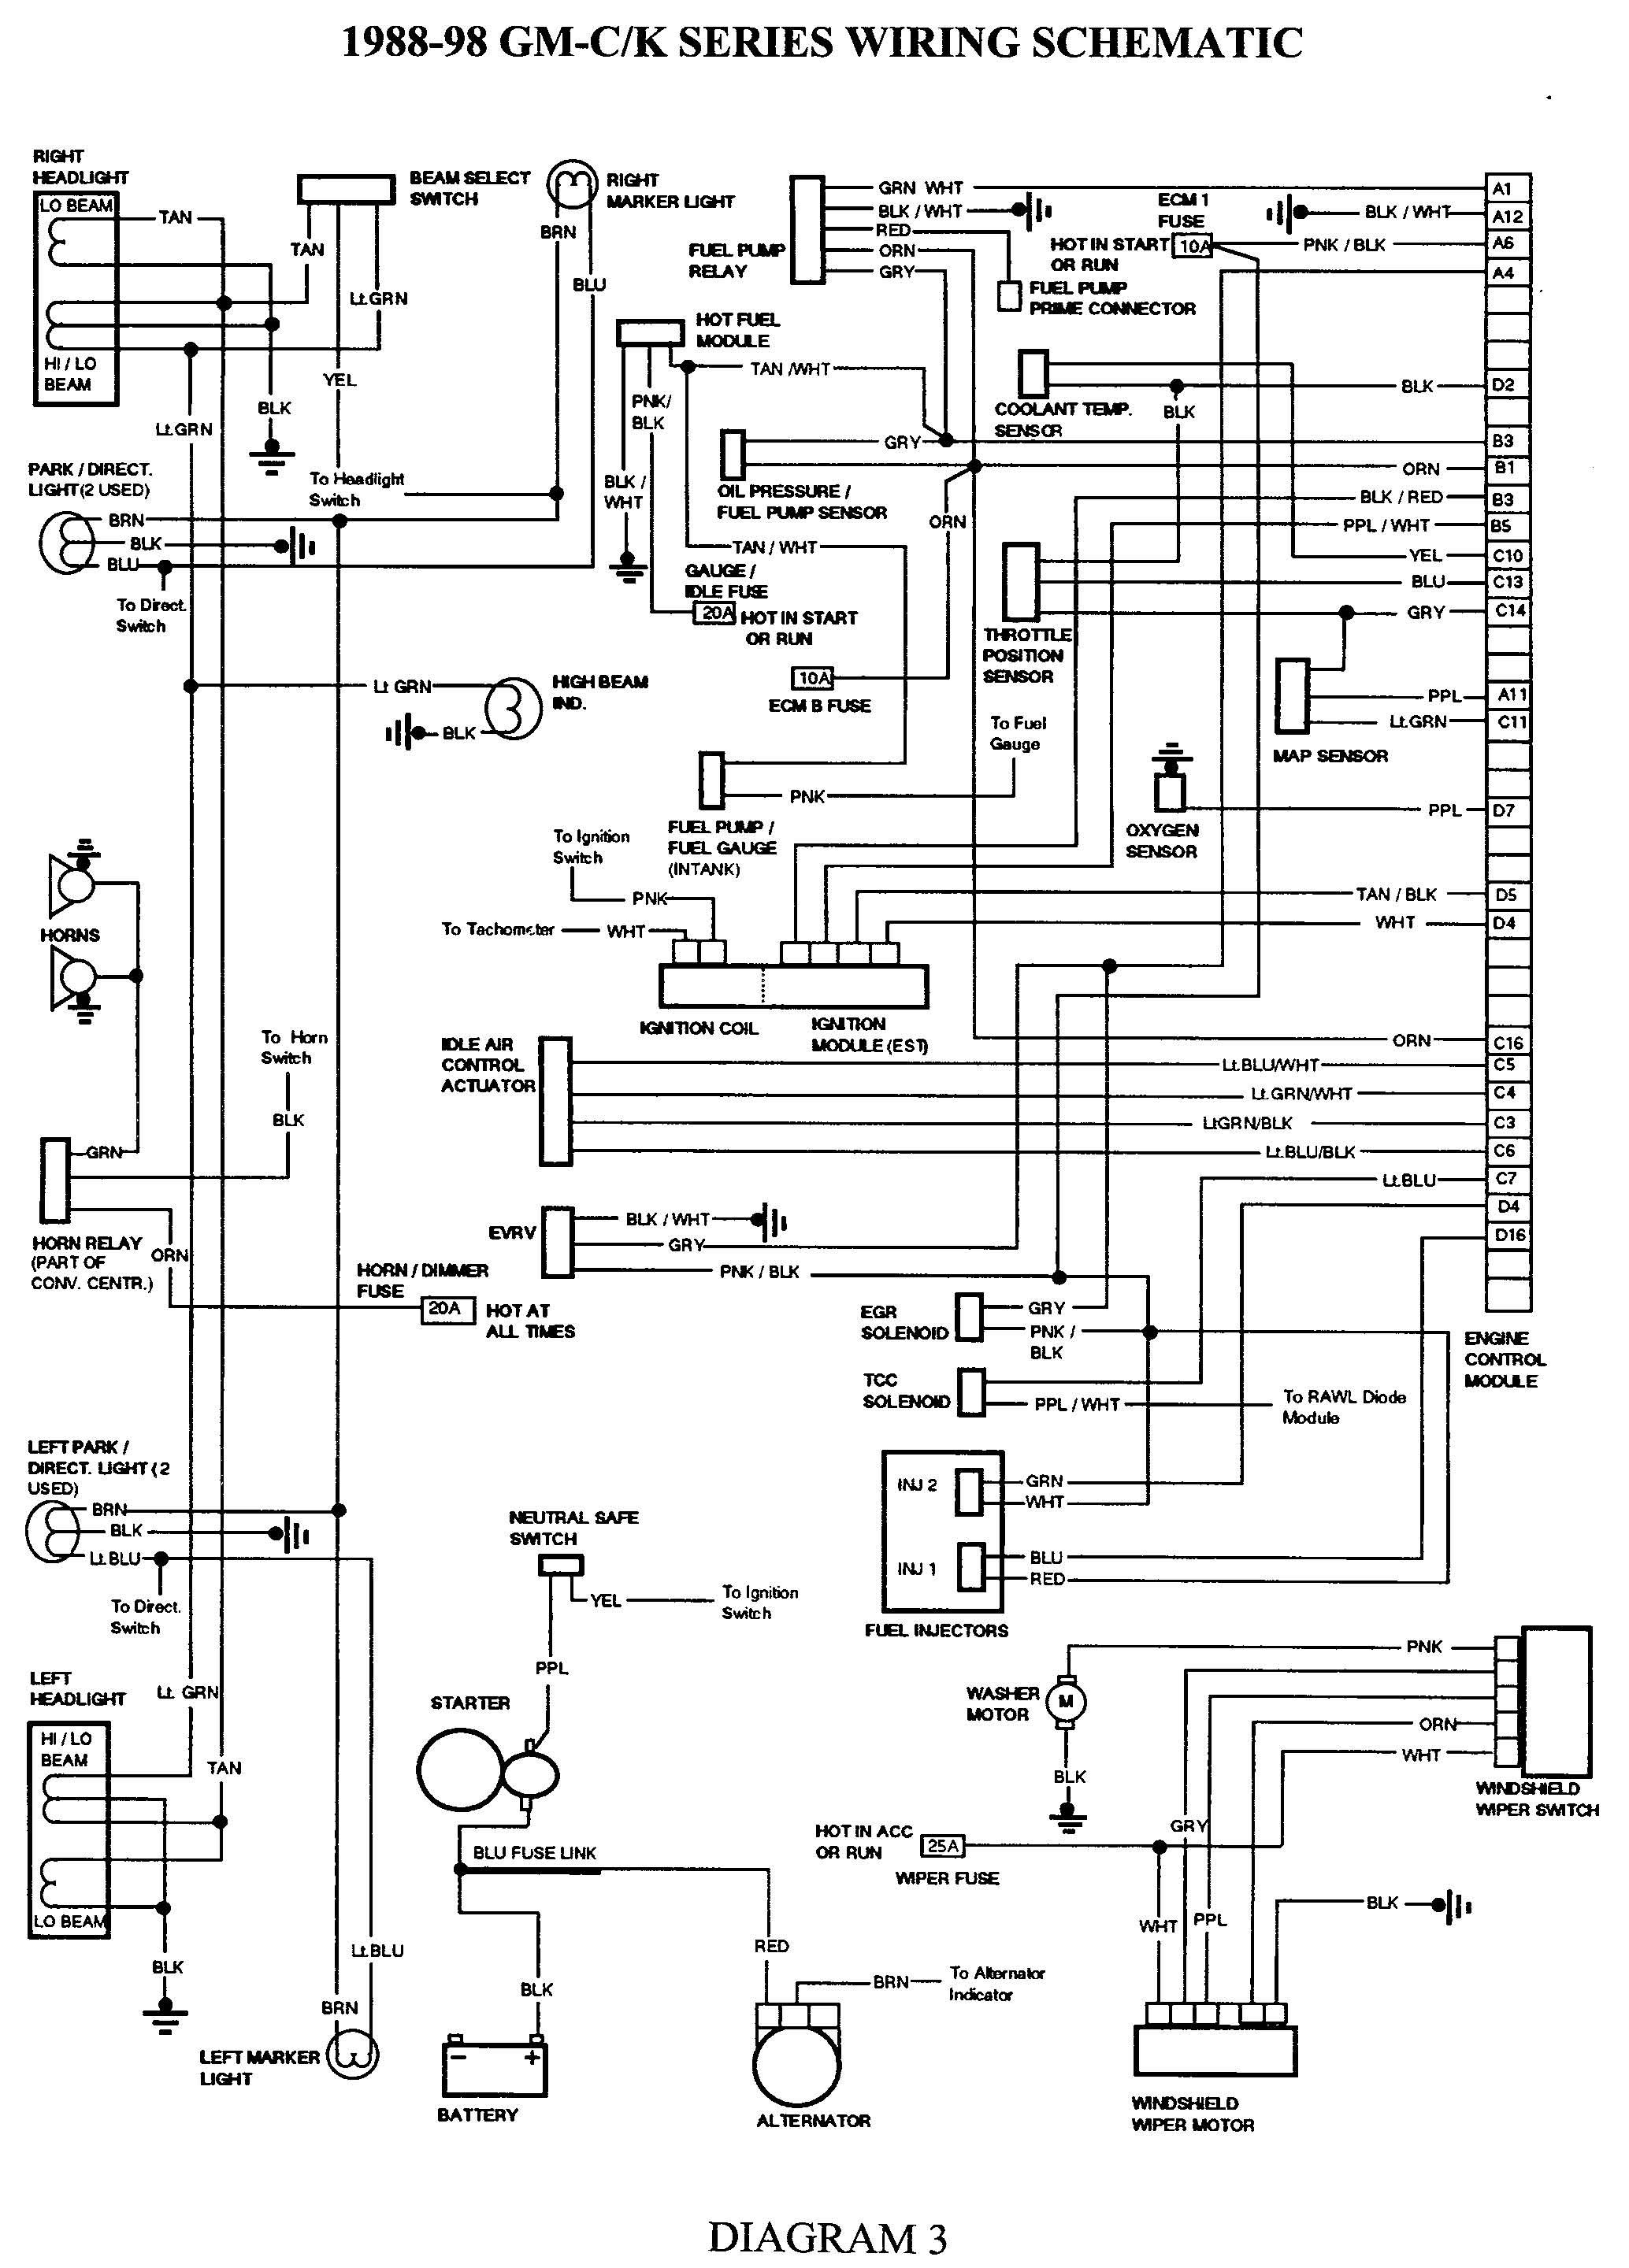 Gmc Engine Wiring Diagram on 1985 gmc fuse box diagram, 1986 gmc wiring diagram, 1991 gmc wiring diagram, 1985 gmc fuel tank, 1985 gmc parts, 1985 toyota pickup vacuum diagram, 1985 gmc engine diagram, gmc s15 wiring diagram, 2008 toyota tundra wiring diagram, 2007 toyota tacoma wiring diagram, 2011 toyota tacoma wiring diagram, 1985 gmc body, 1984 gmc wiring diagram, 85 corvette wiring diagram, 1985 gmc steering column diagram, 1985 gmc vacuum diagram, gmc sierra wiring diagram, 1985 gmc brakes diagram, 86 corvette dash wiring diagram,